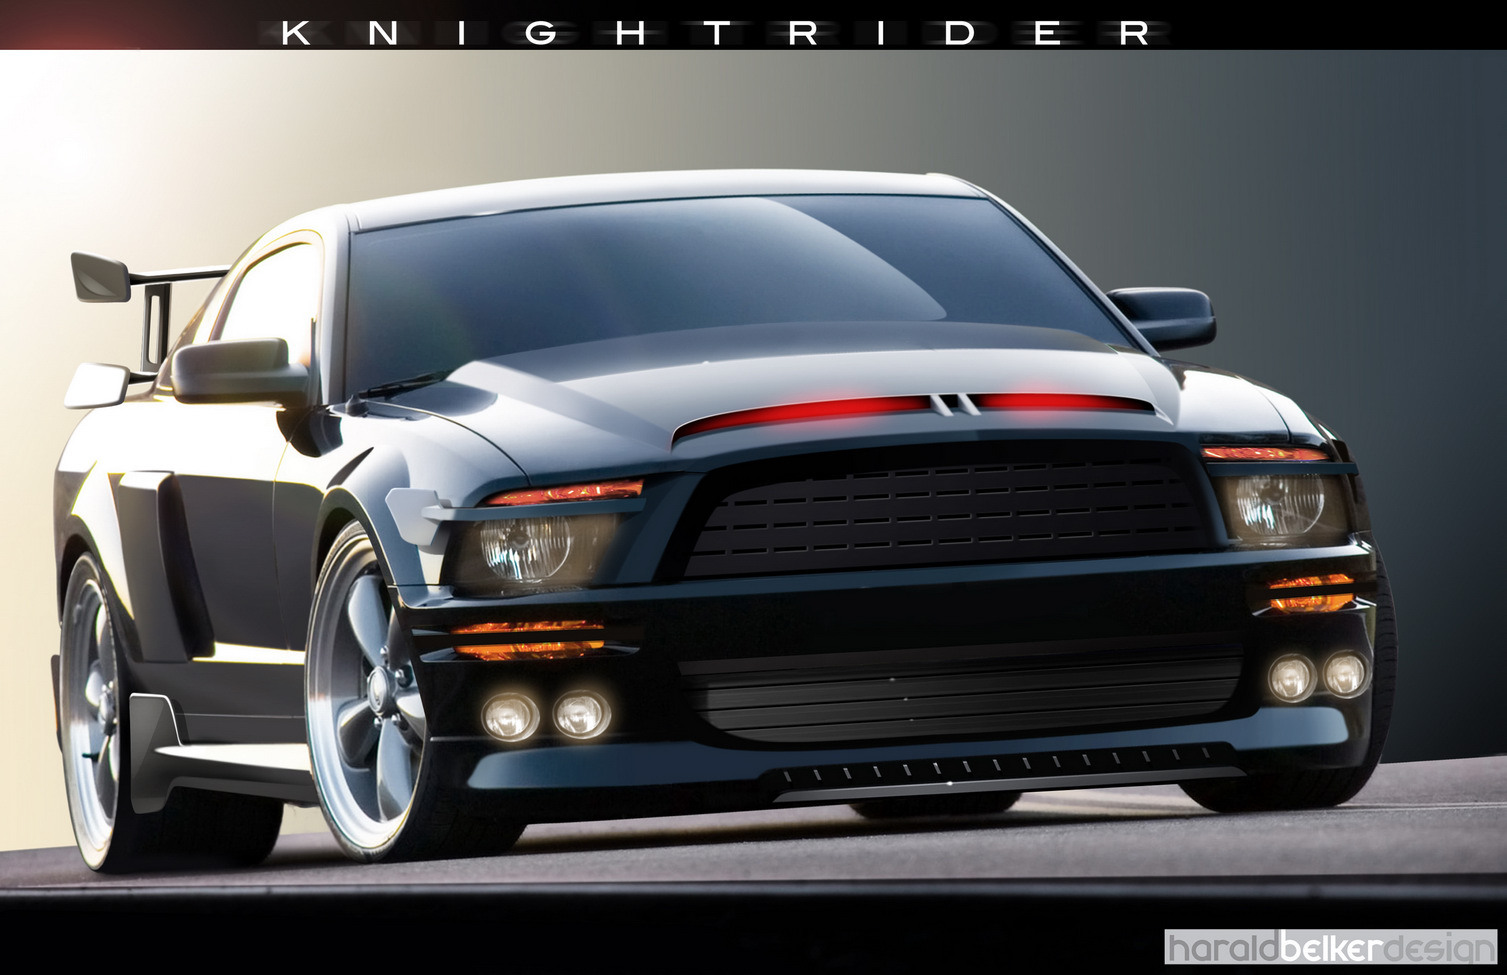 Knight Rider images KITT 3000 Wallpaper HD wallpaper 1507x975